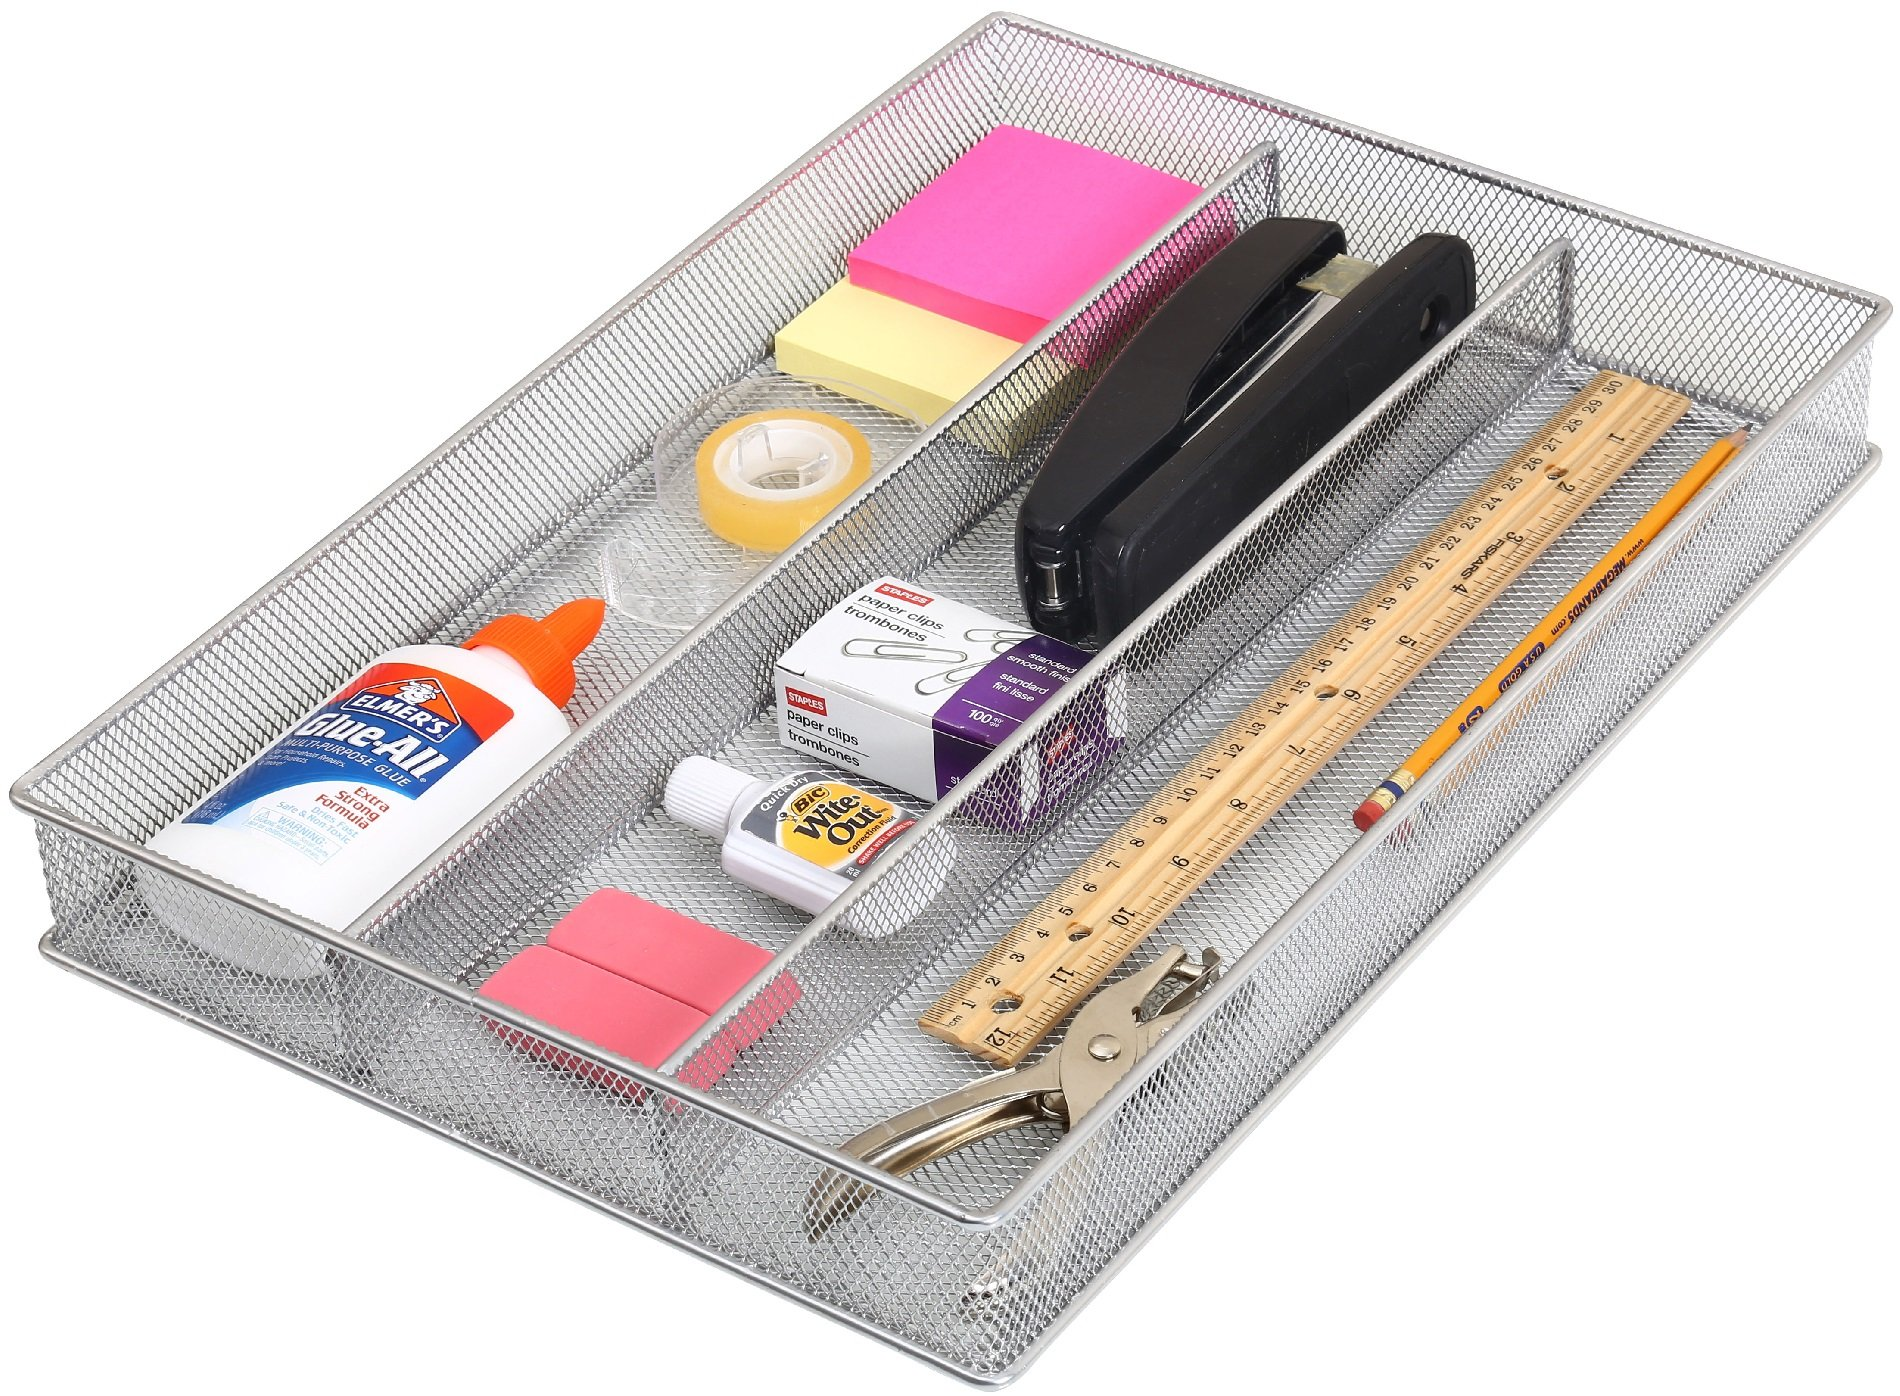 Ybm Home Silver Mesh Cutlery Holder In-drawer Utensil Flatware Organizer/tray Size Width 11'' Length 16'' Height 2'' 1150 (3-compartment)